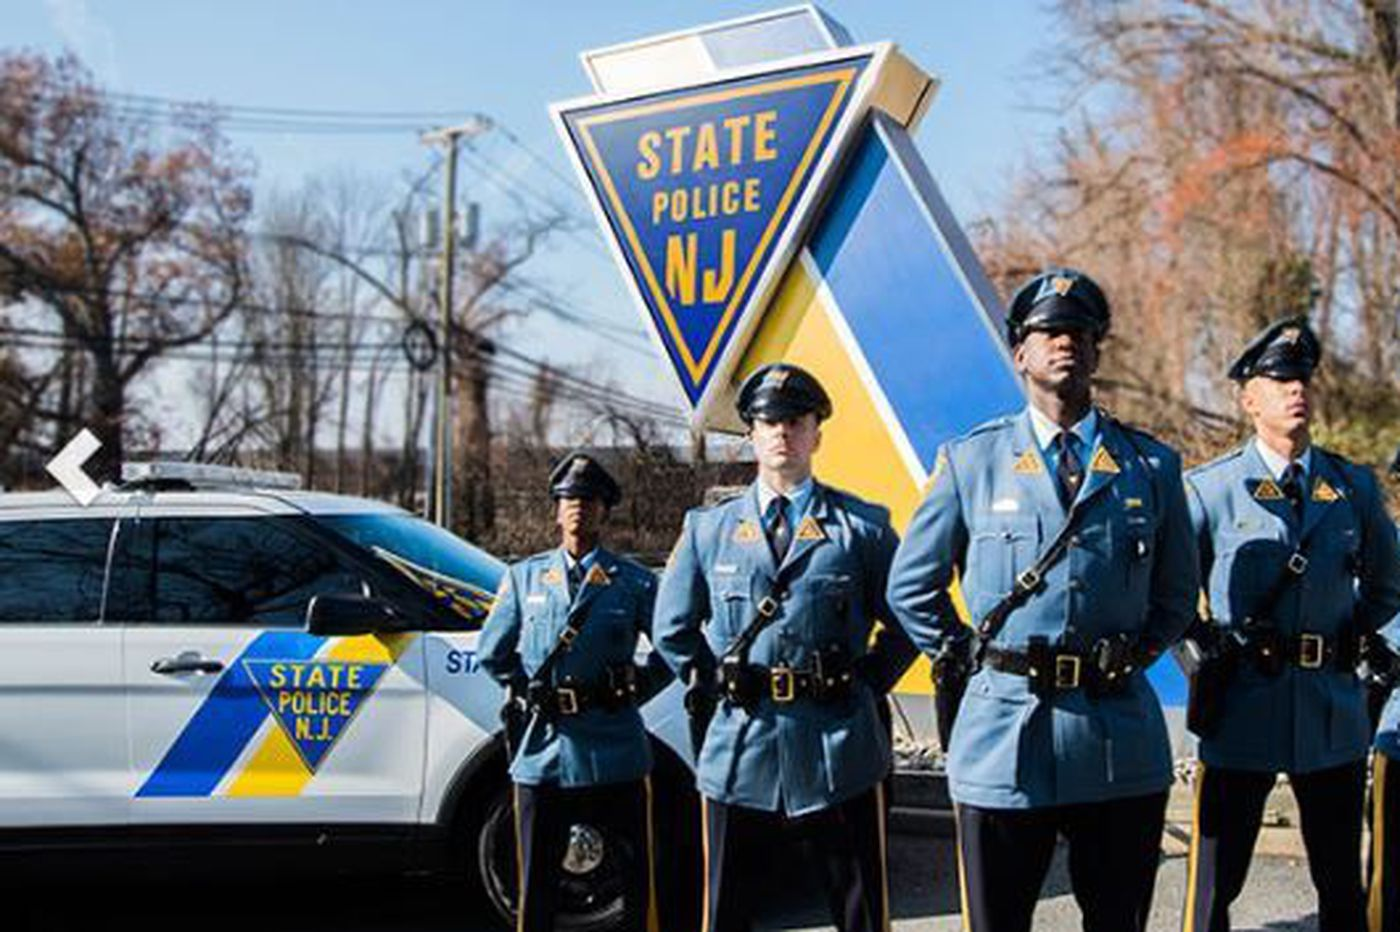 New Jersey AG releases recordings of state trooper's fatal encounter with an unarmed black man in Burlington County